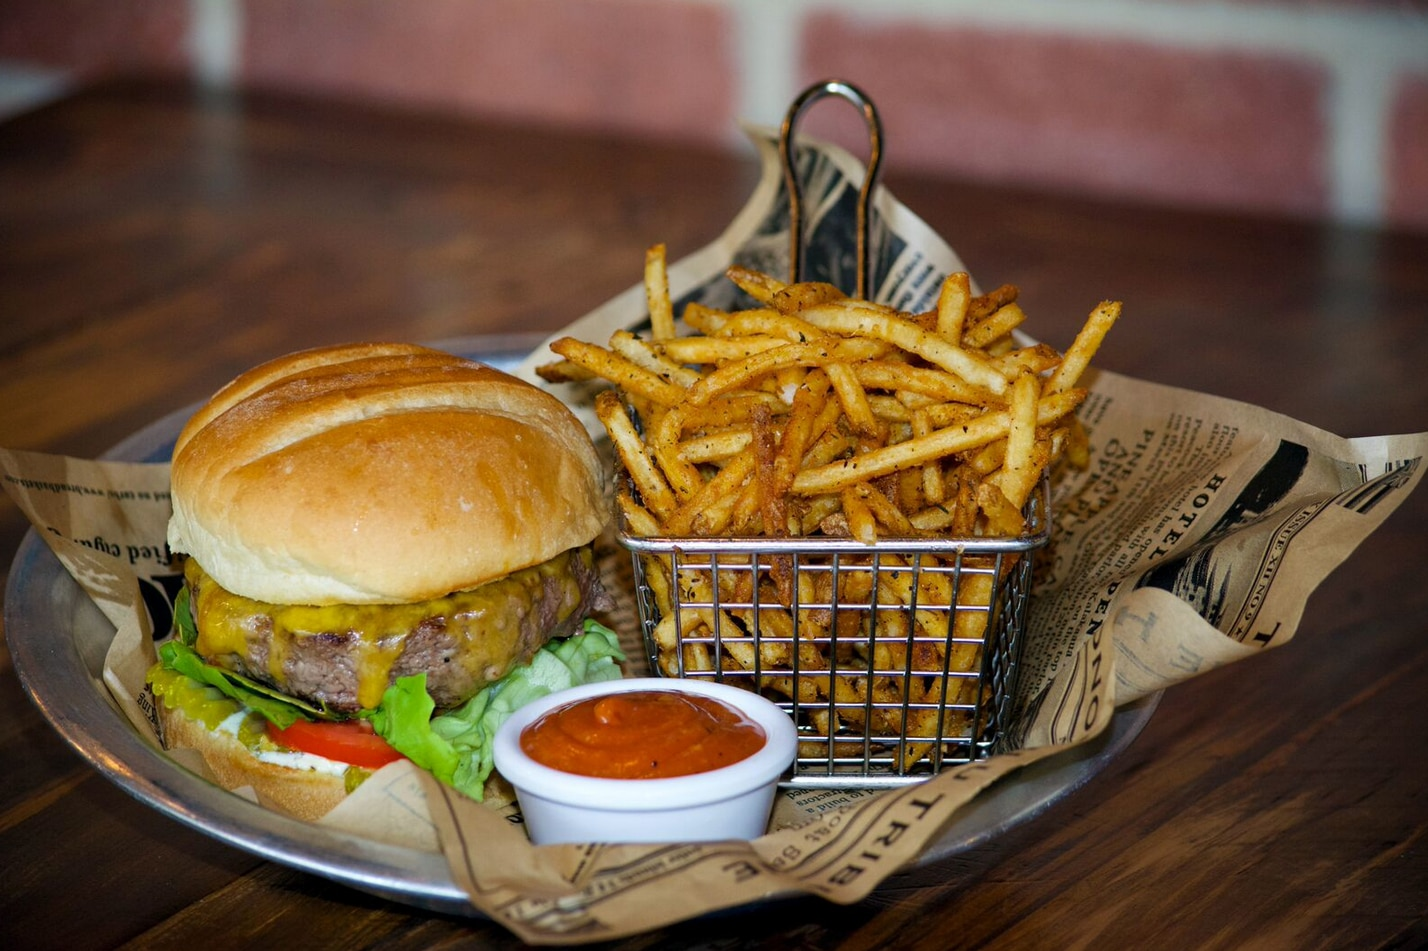 The cheeseburger is made with Akaushi beef and topped with a bun from Village Baking Co. in Dallas.